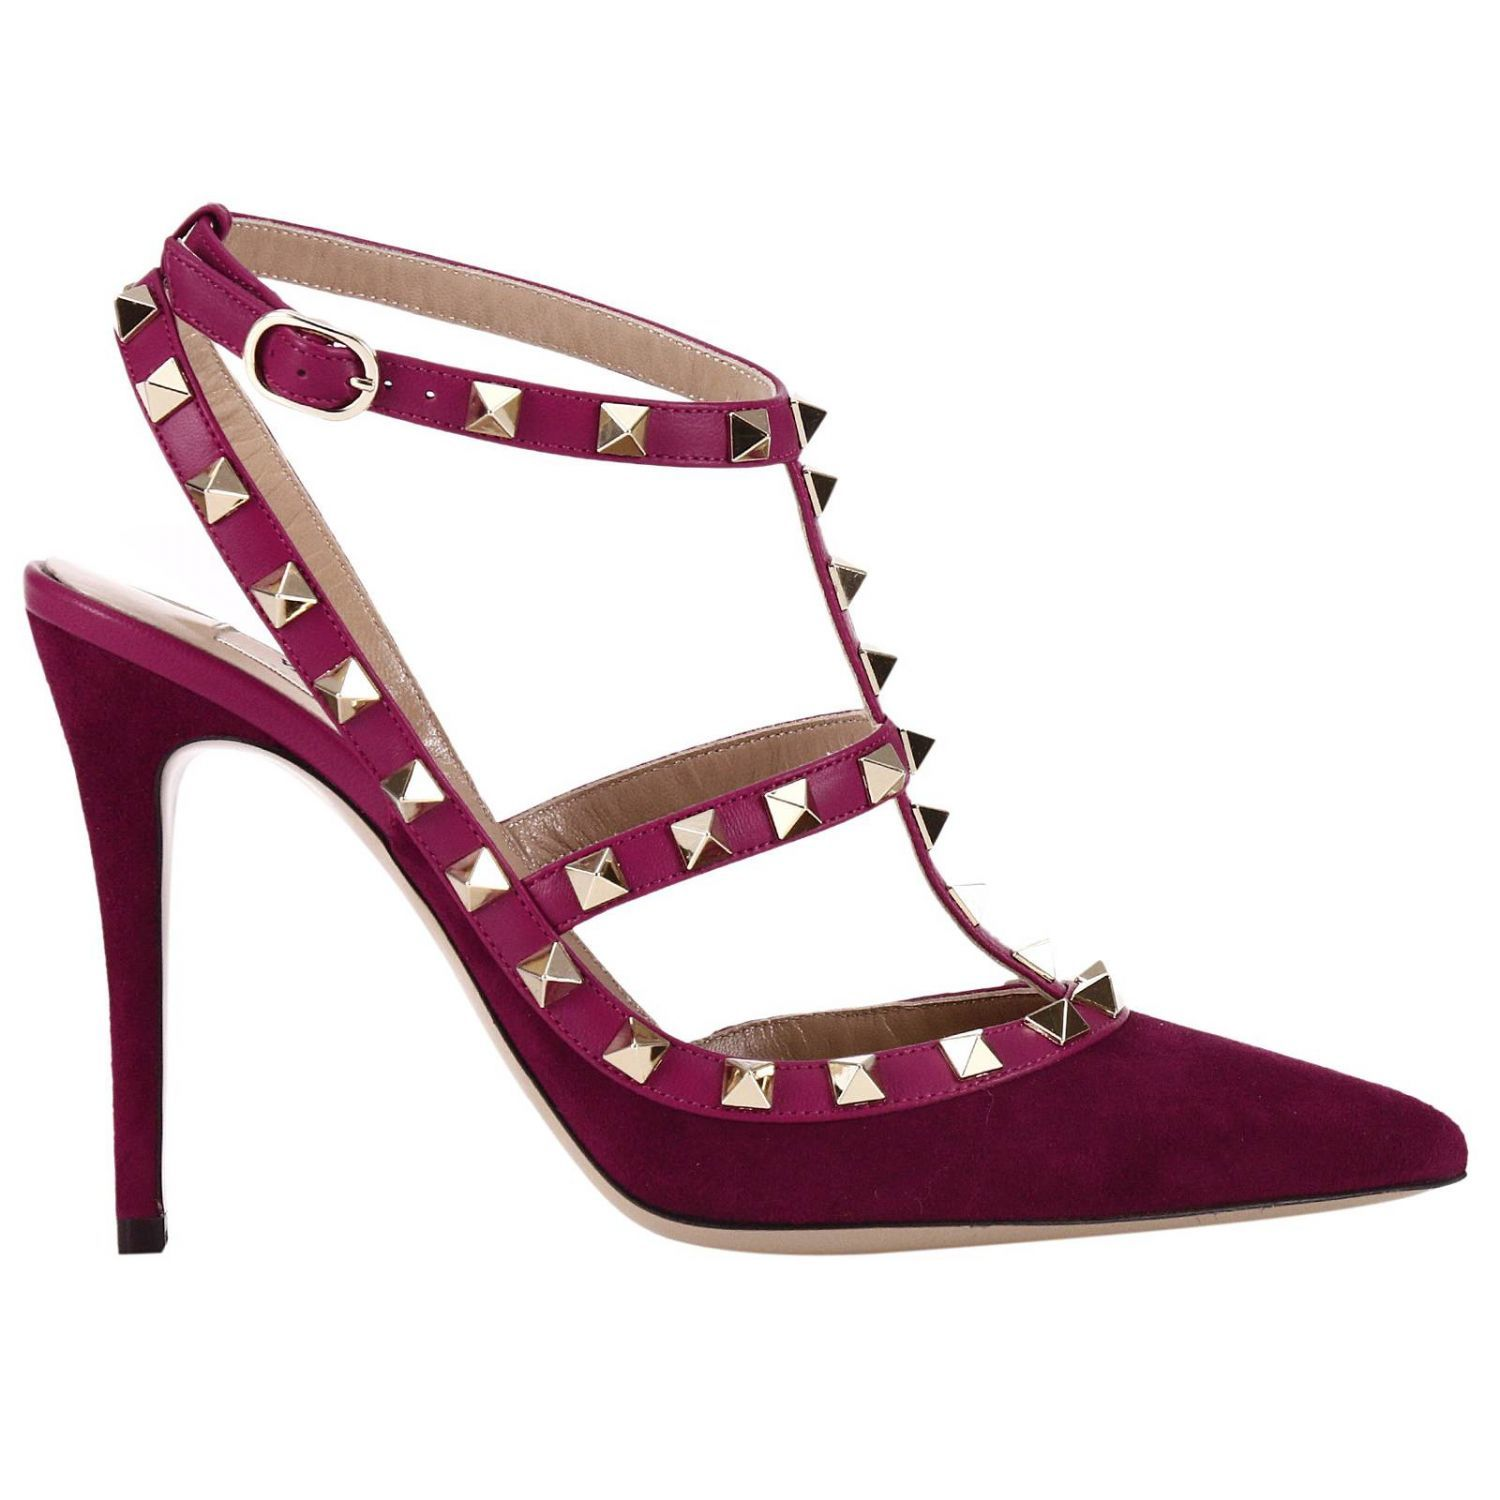 Pumps Rockstud Ankle Strap In Suede And Nappa With High Heel And Metal Studs